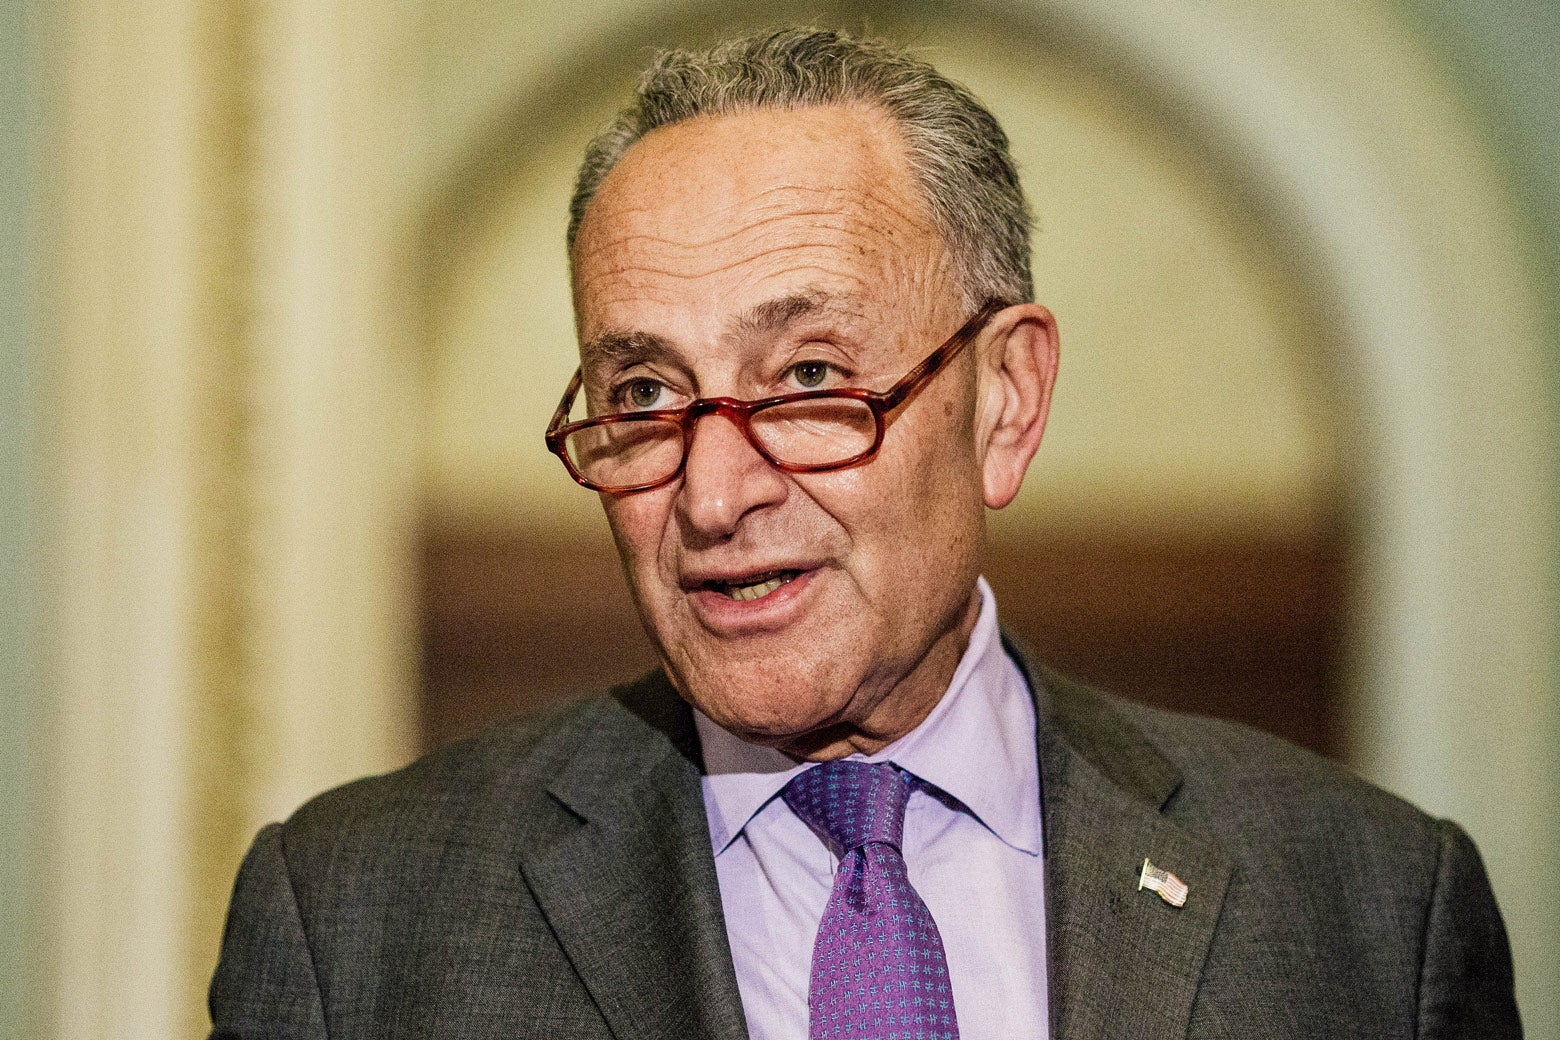 Senate Minority Leader Chuck Schumer speaks to members of the press after meeting with Supreme Court nominee Brett Kavanaugh on Tuesday in Washington.